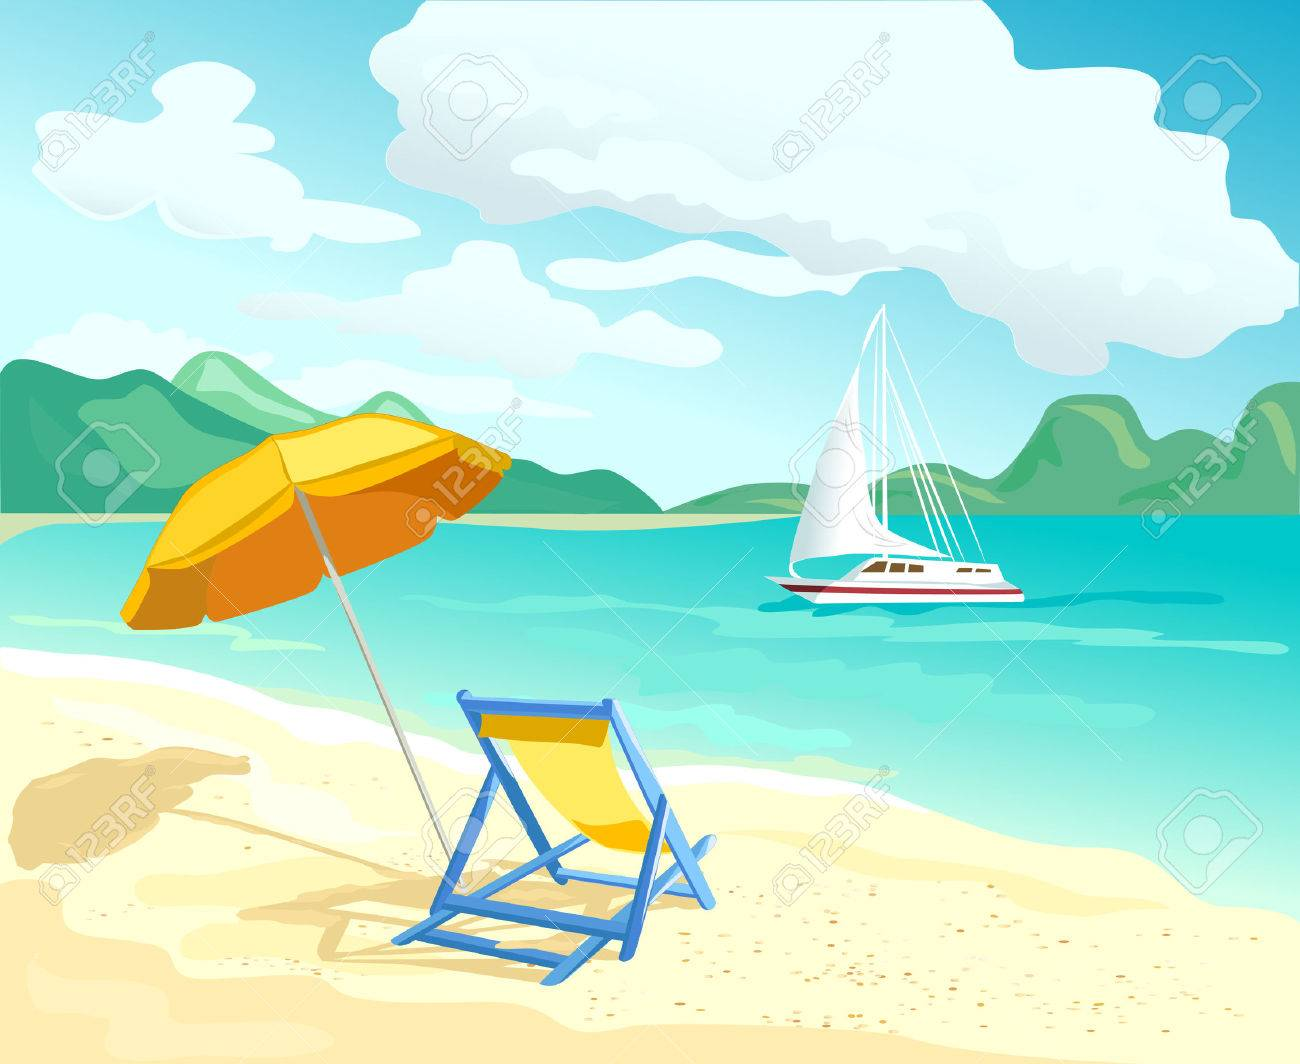 beach with sun loungers and parasols. vector illustration Standard-Bild - 44641560